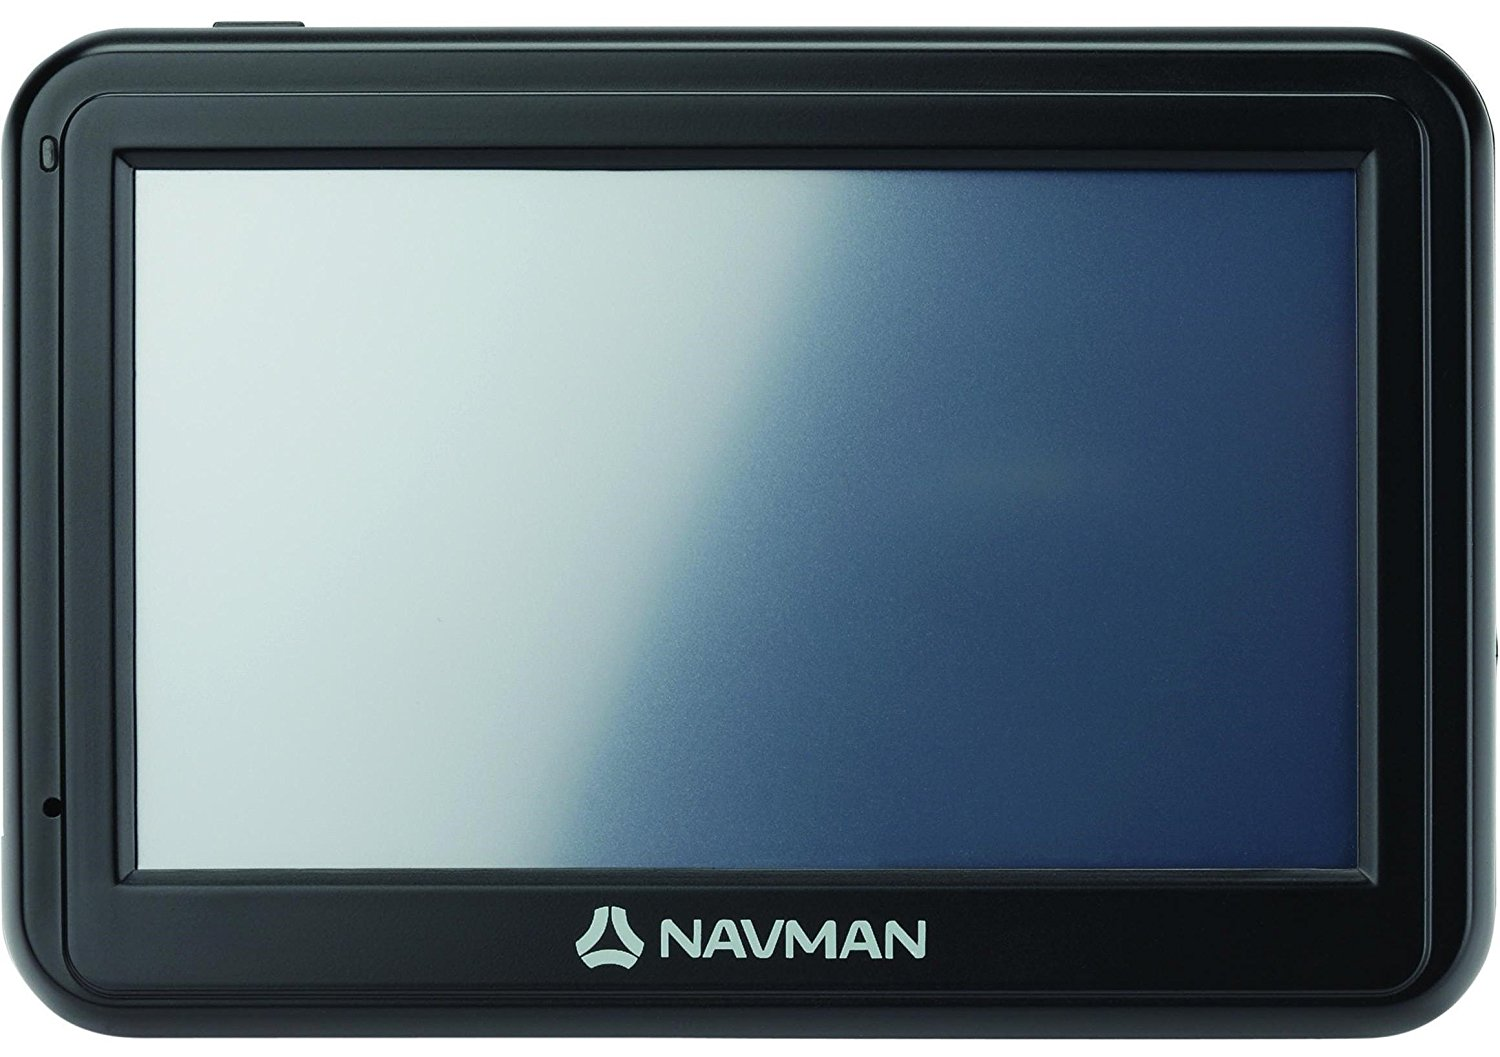 Navman S-Series Maps for Navman S30 S50 S70 S90i Sat Navs